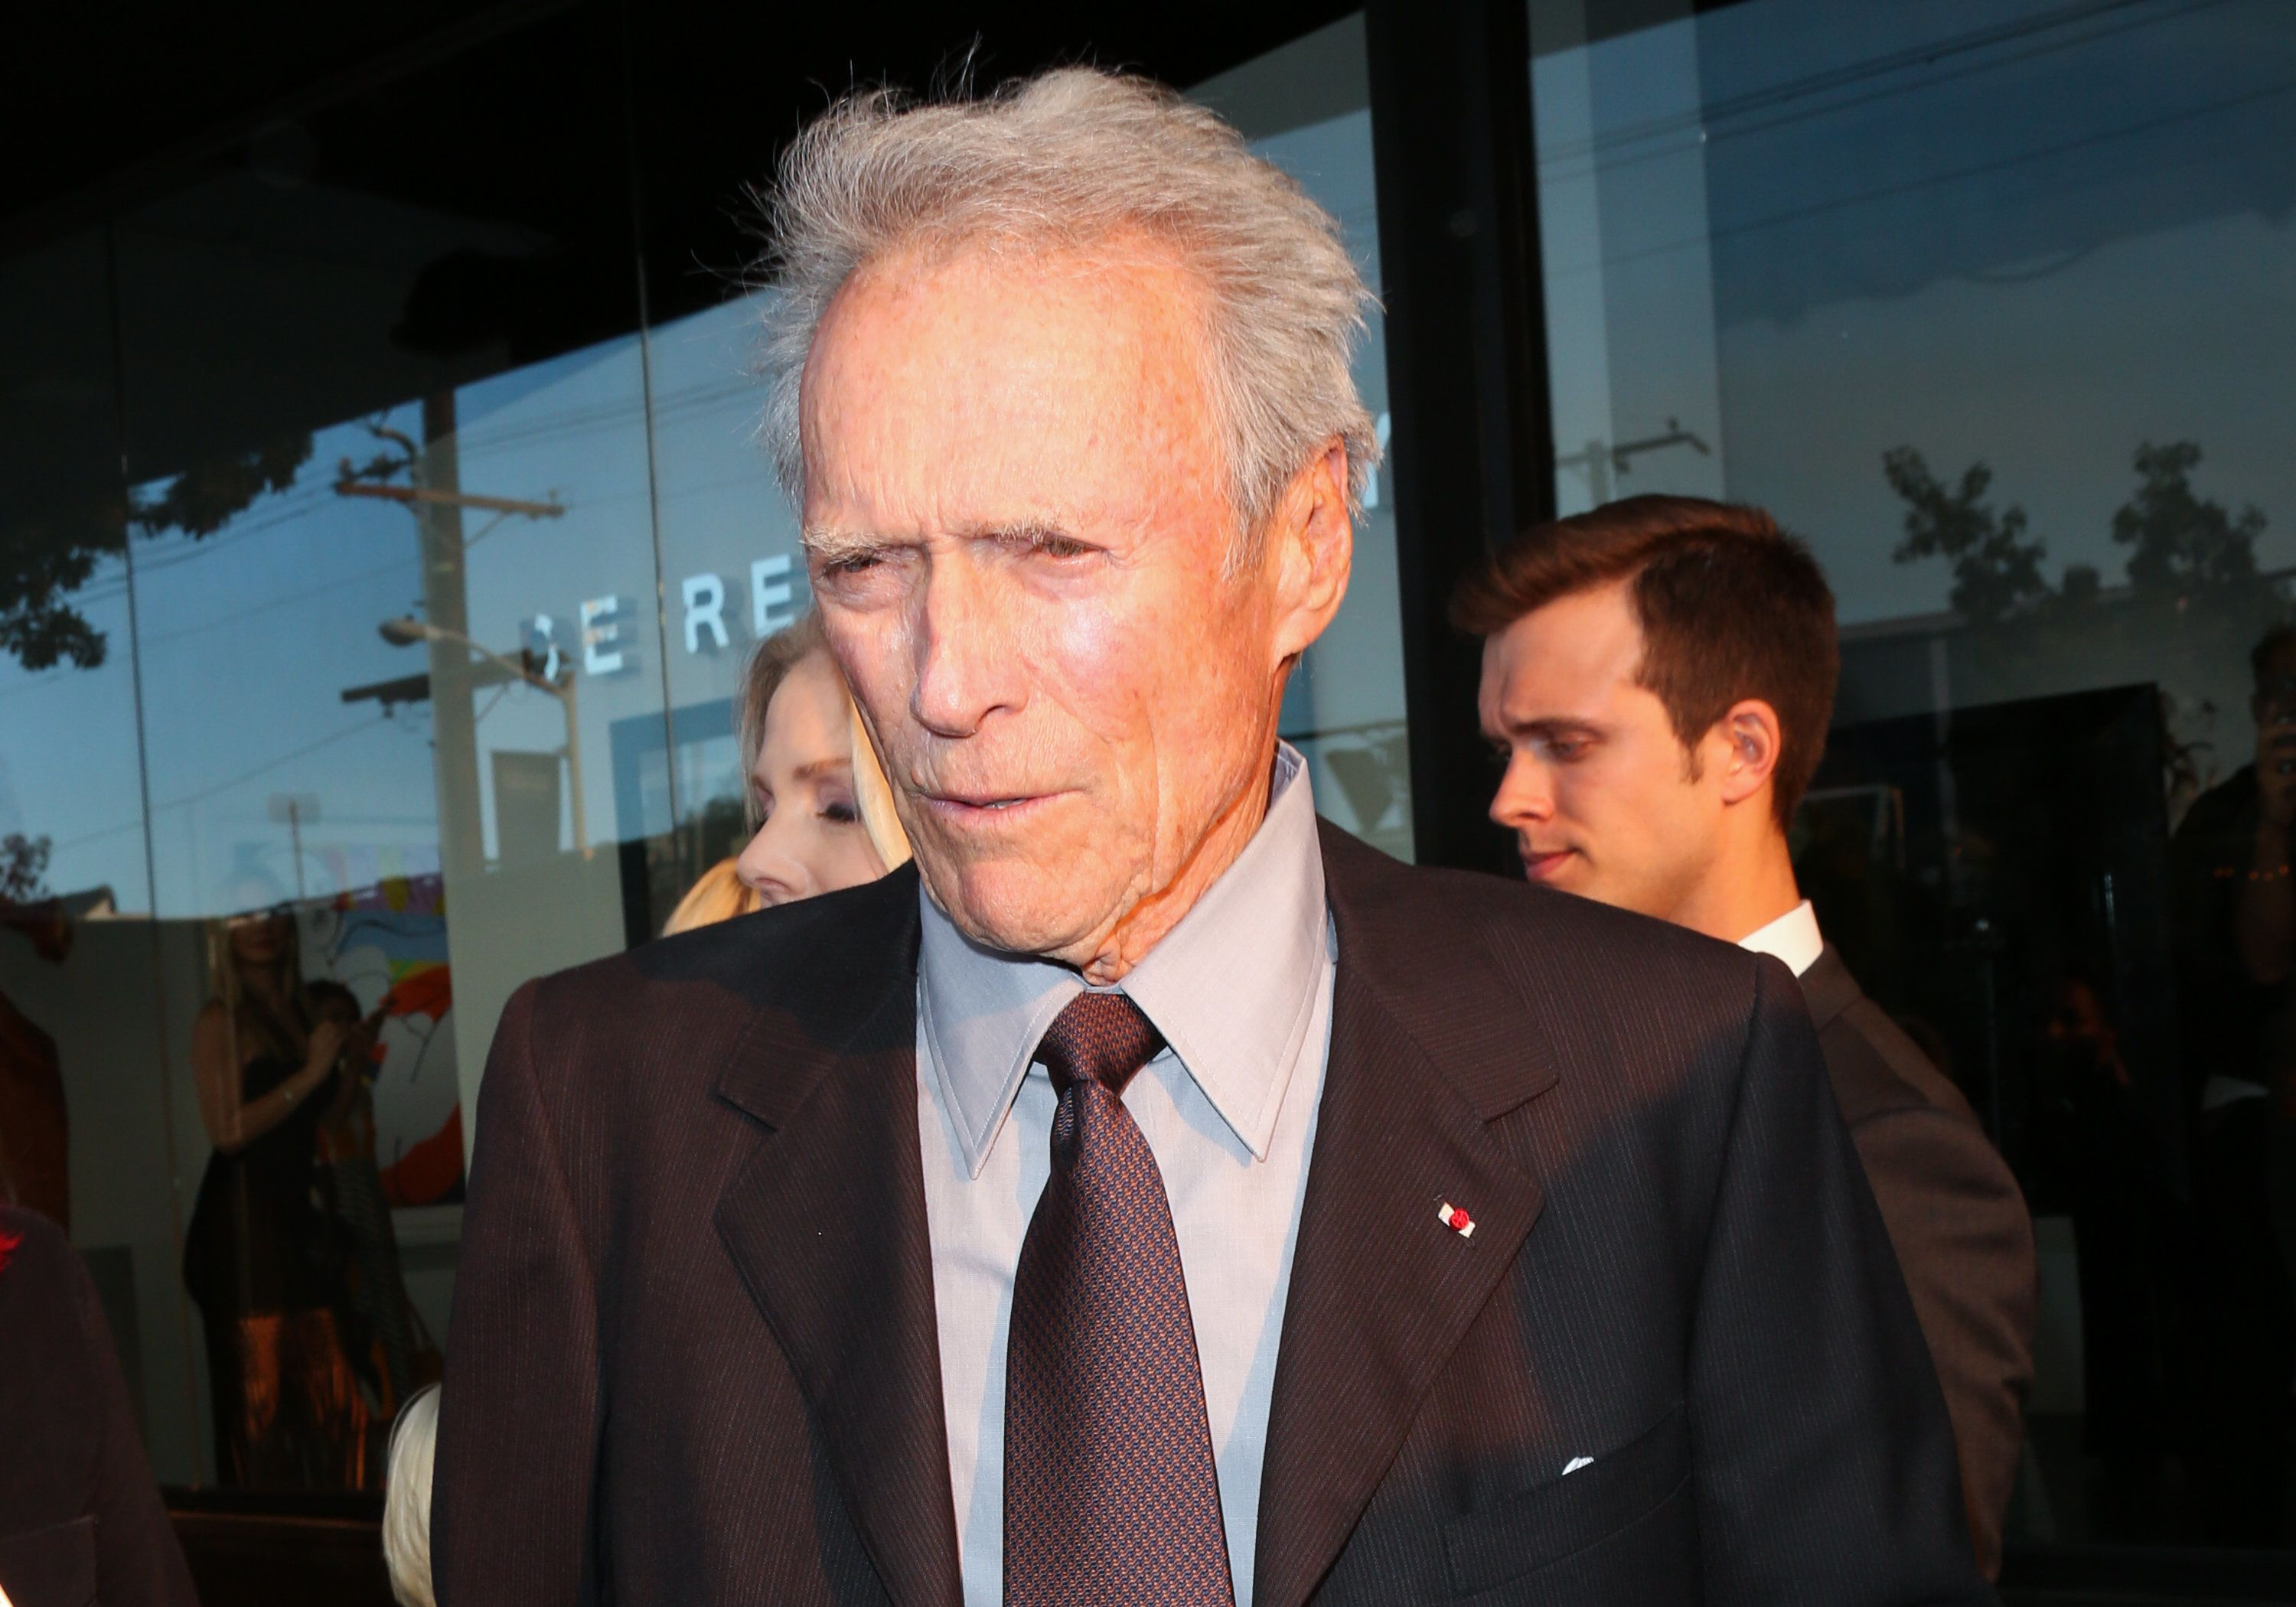 WEST HOLLYWOOD, CA - JUNE 04:  Actor / Director Clint Eastwood attends the 2nd annual 'Art For Animals' fundraiser for the Eastwood Ranch Foundation at De Re Gallery on June 4, 2016 in West Hollywood, California.  (Photo by Paul Archuleta/FilmMagic)